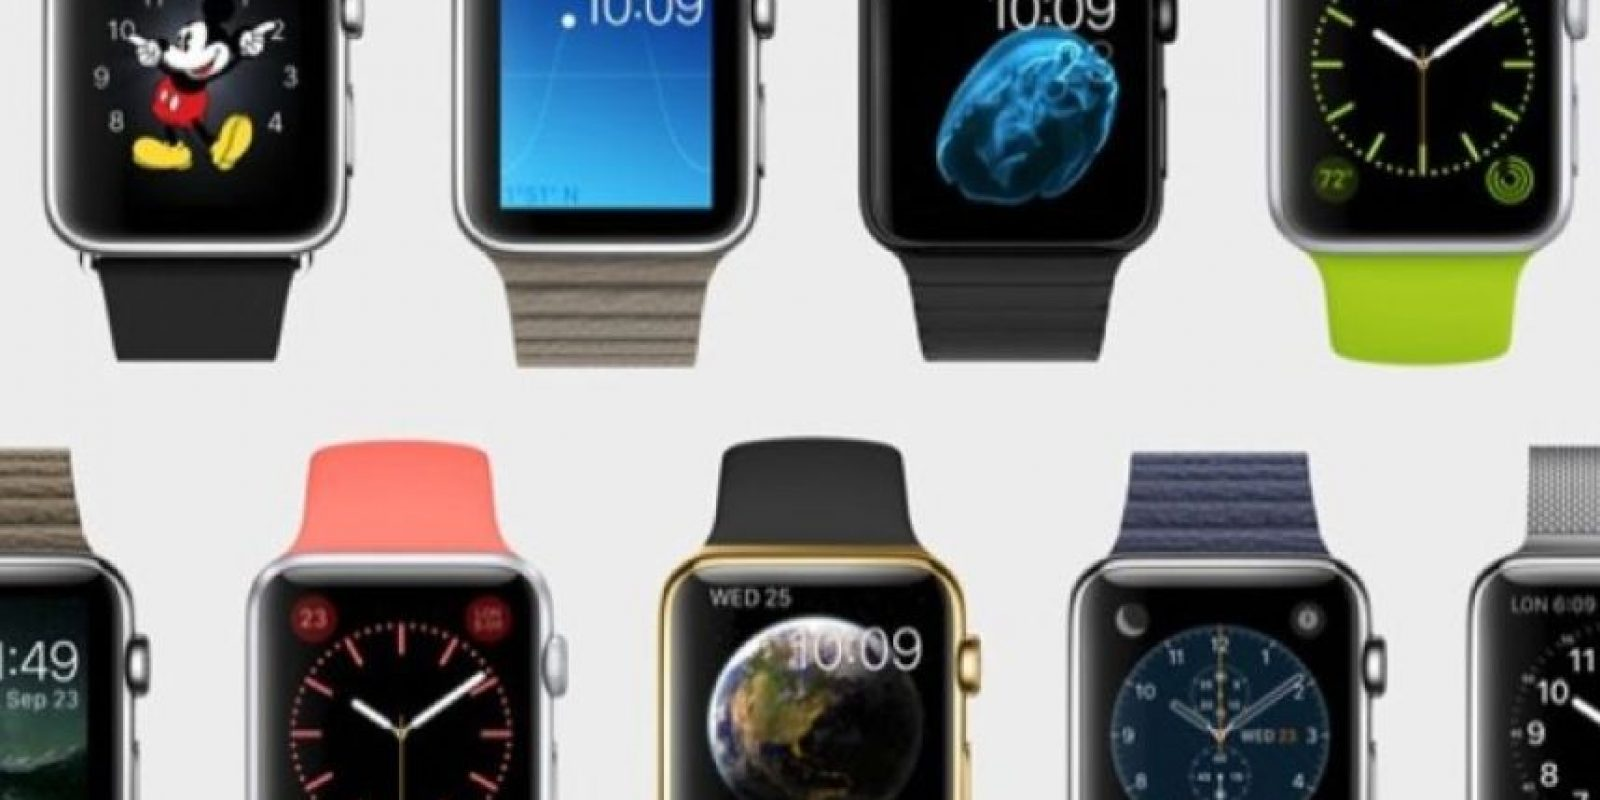 Apple Watch, Apple Watch Sport y Apple Watch Edition son los modelos del reloj inteligente. Foto: Apple